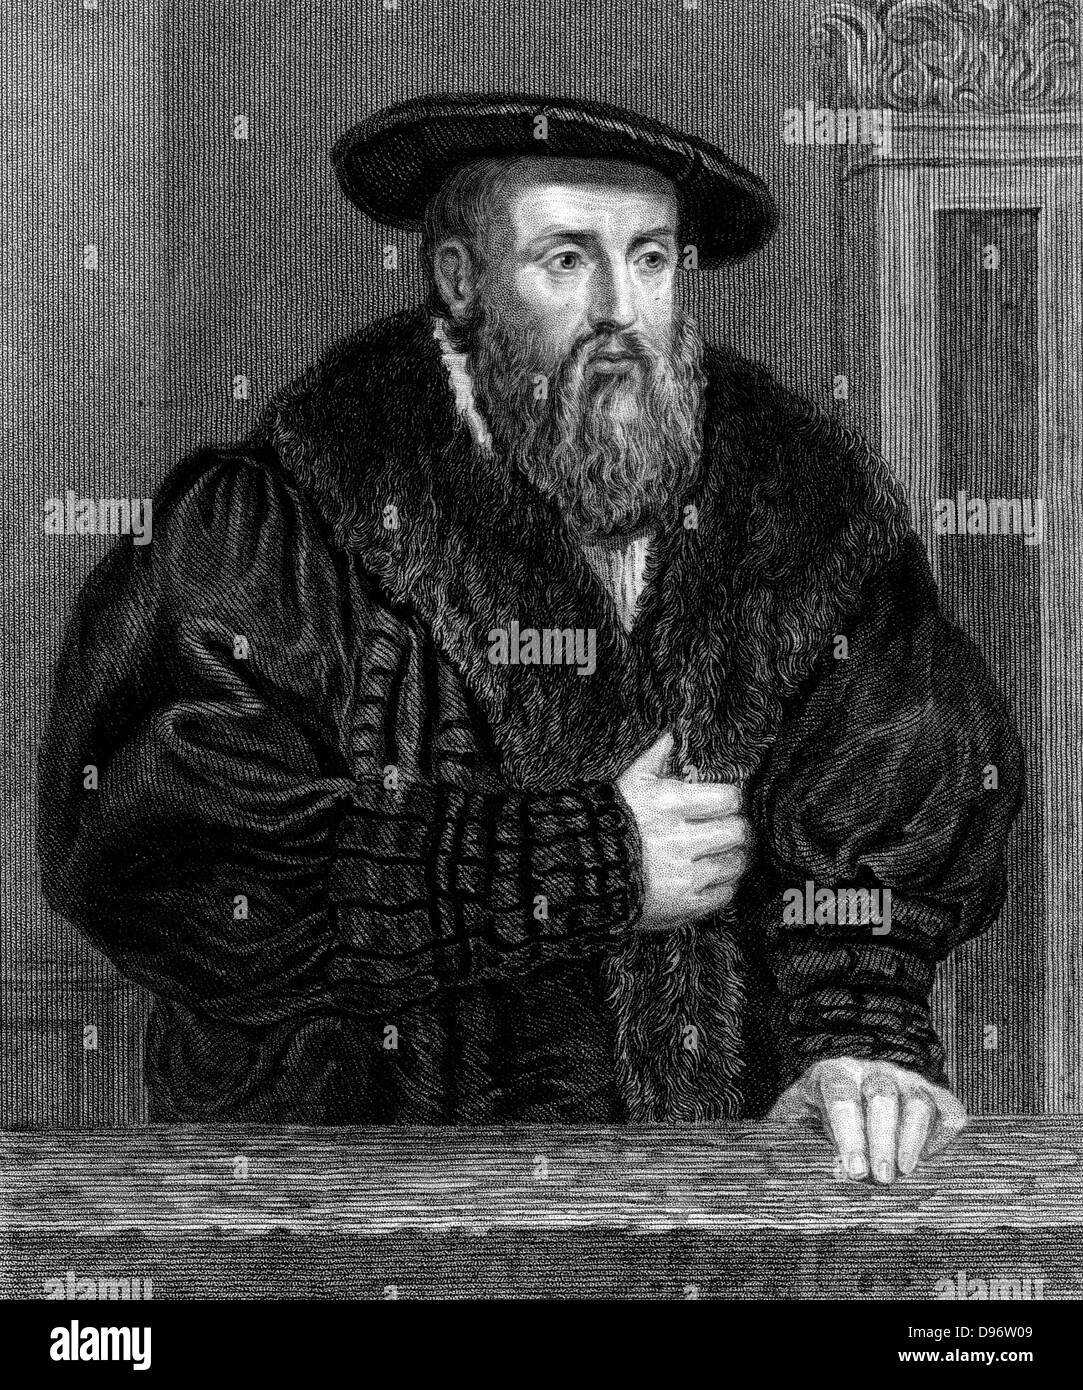 Johannes Kepler (1571-1630) German astronomer. Engraving - Stock Image